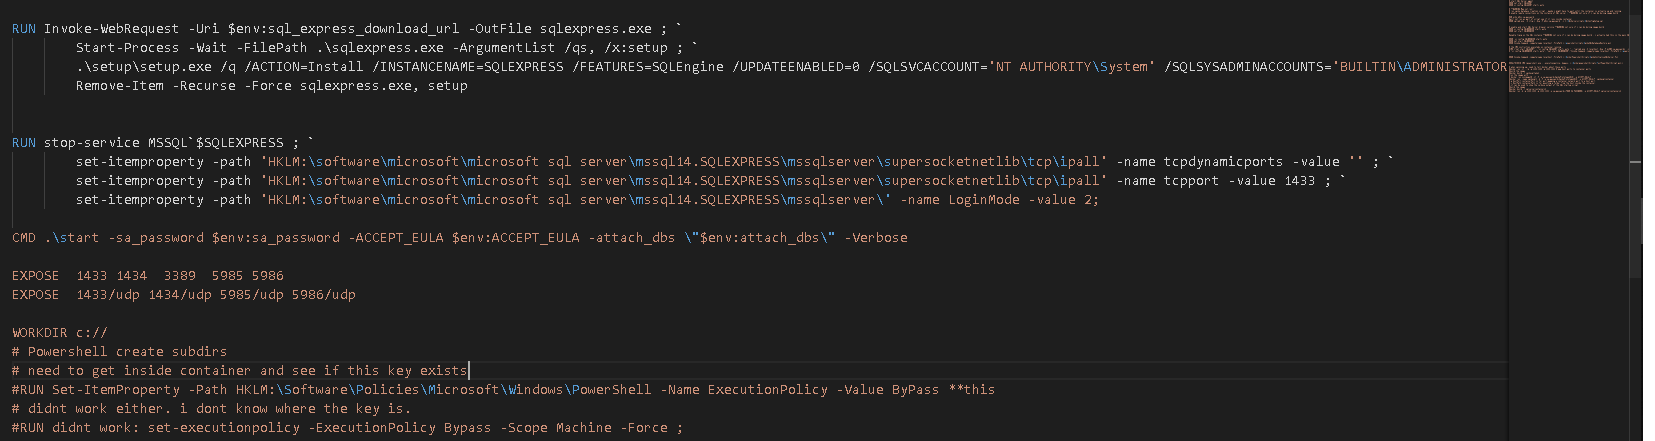 Linting stops working after RUN command in visual studio code with